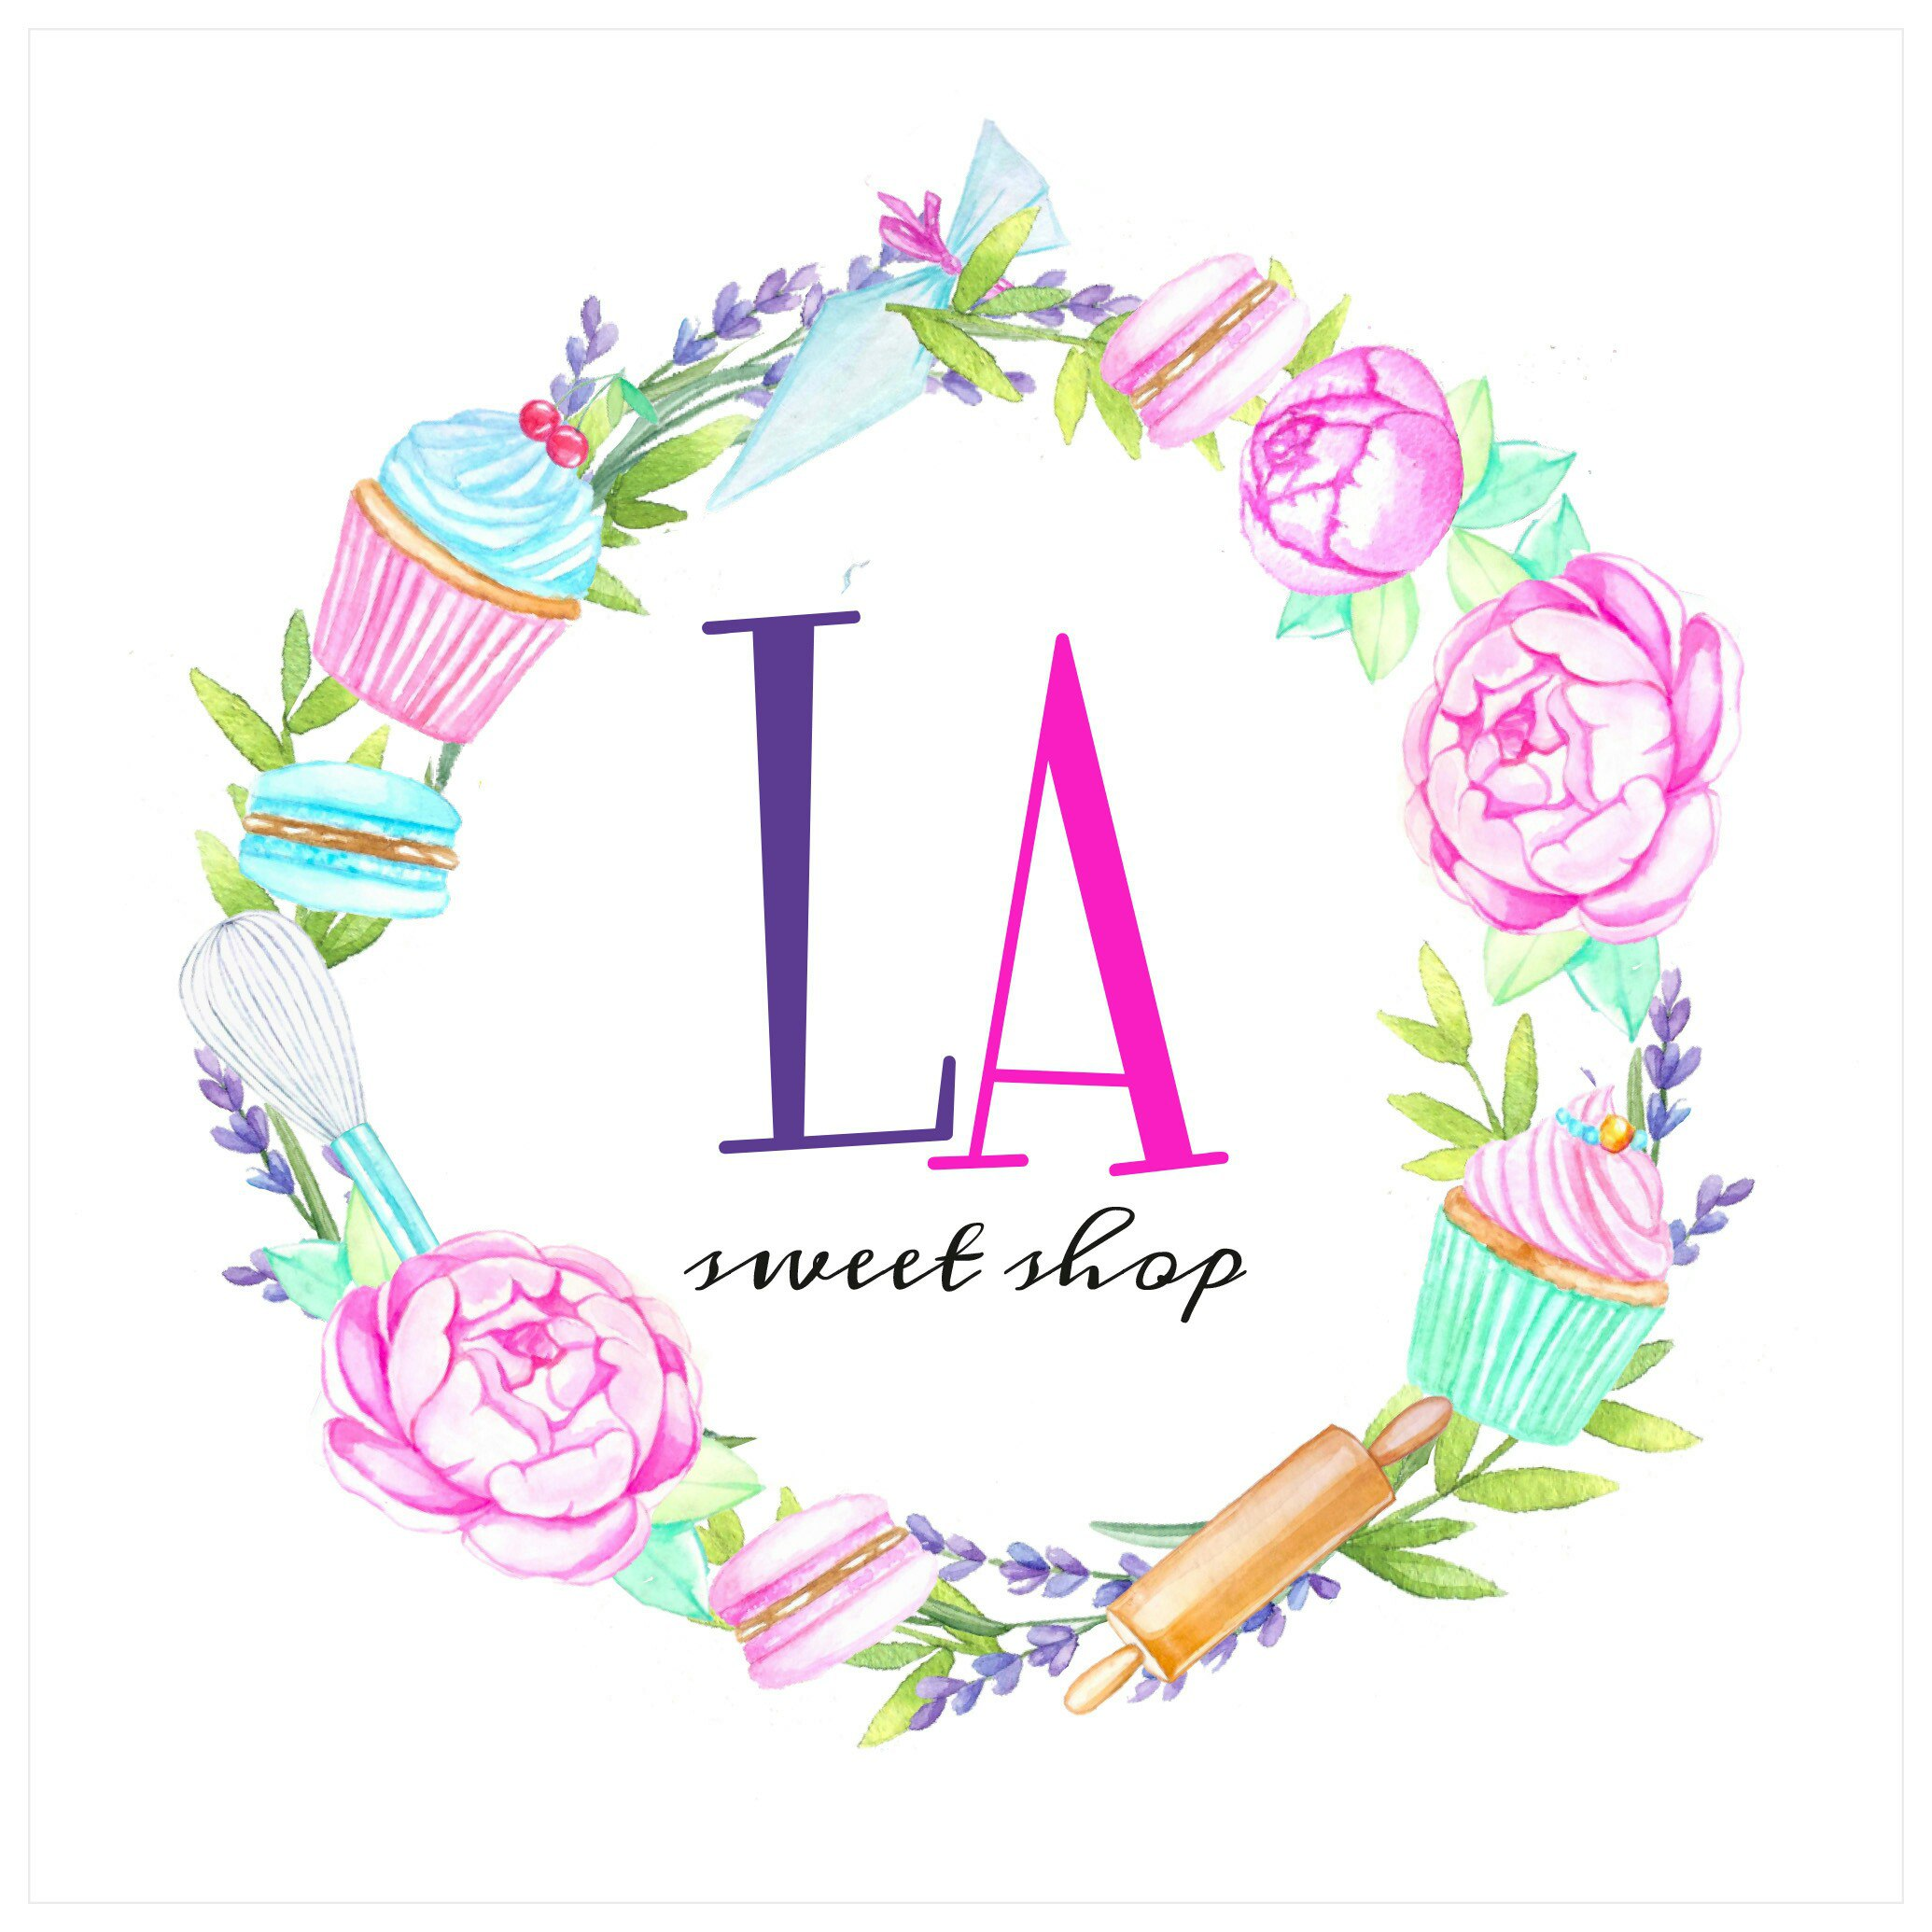 L.A. Sweetshop